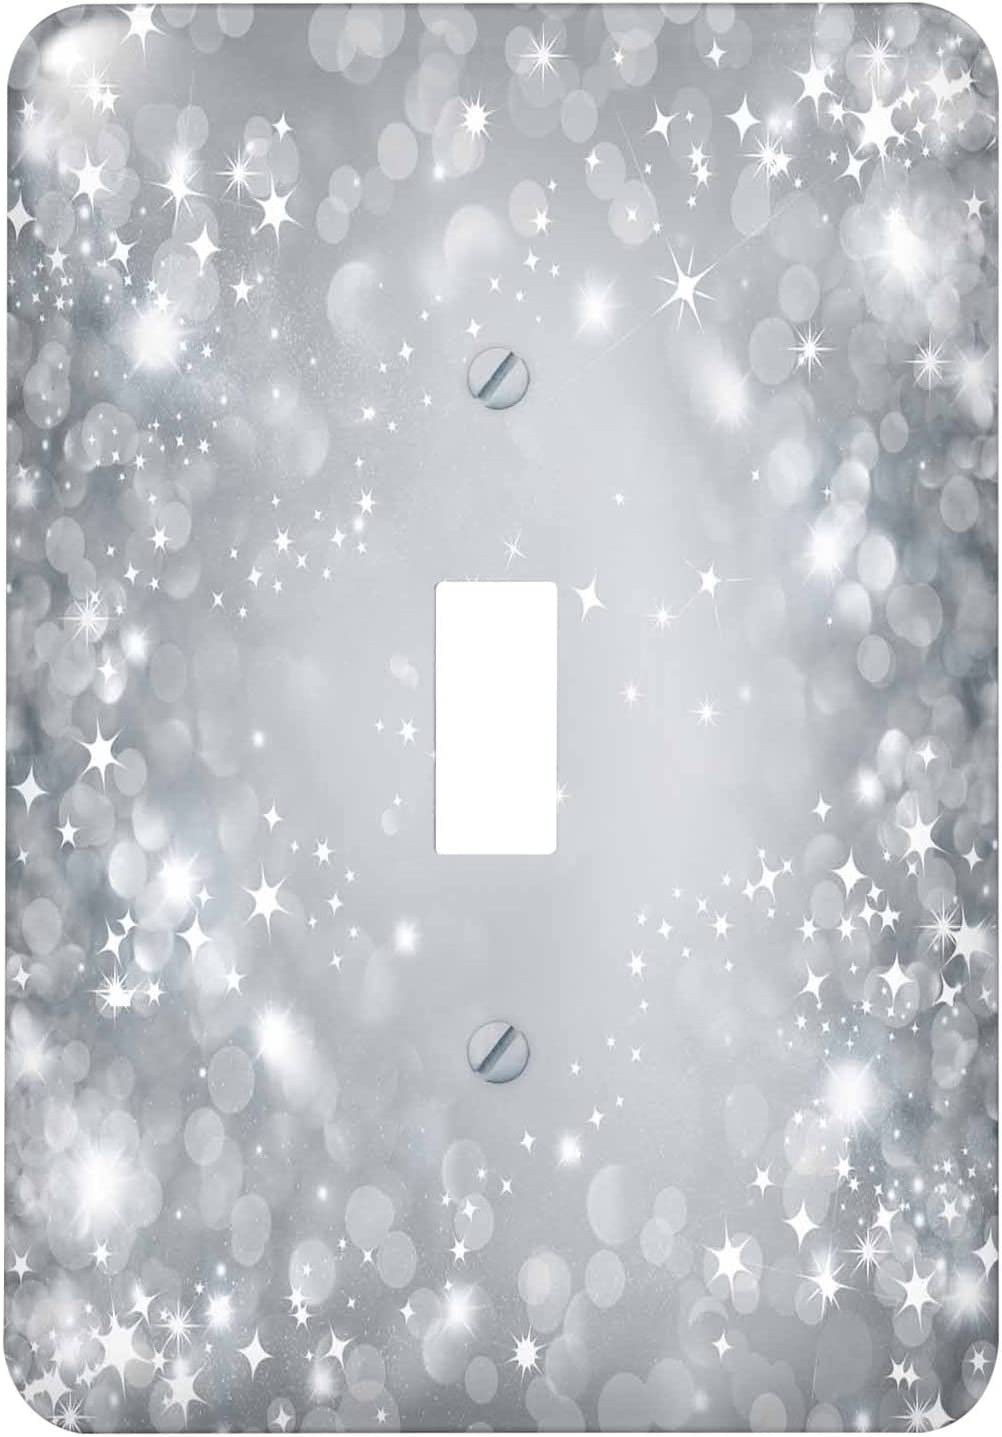 LSP/_222291/_1 White and Gray Sparkle Bokeh with Stars Single Toggle Switch 3dRose